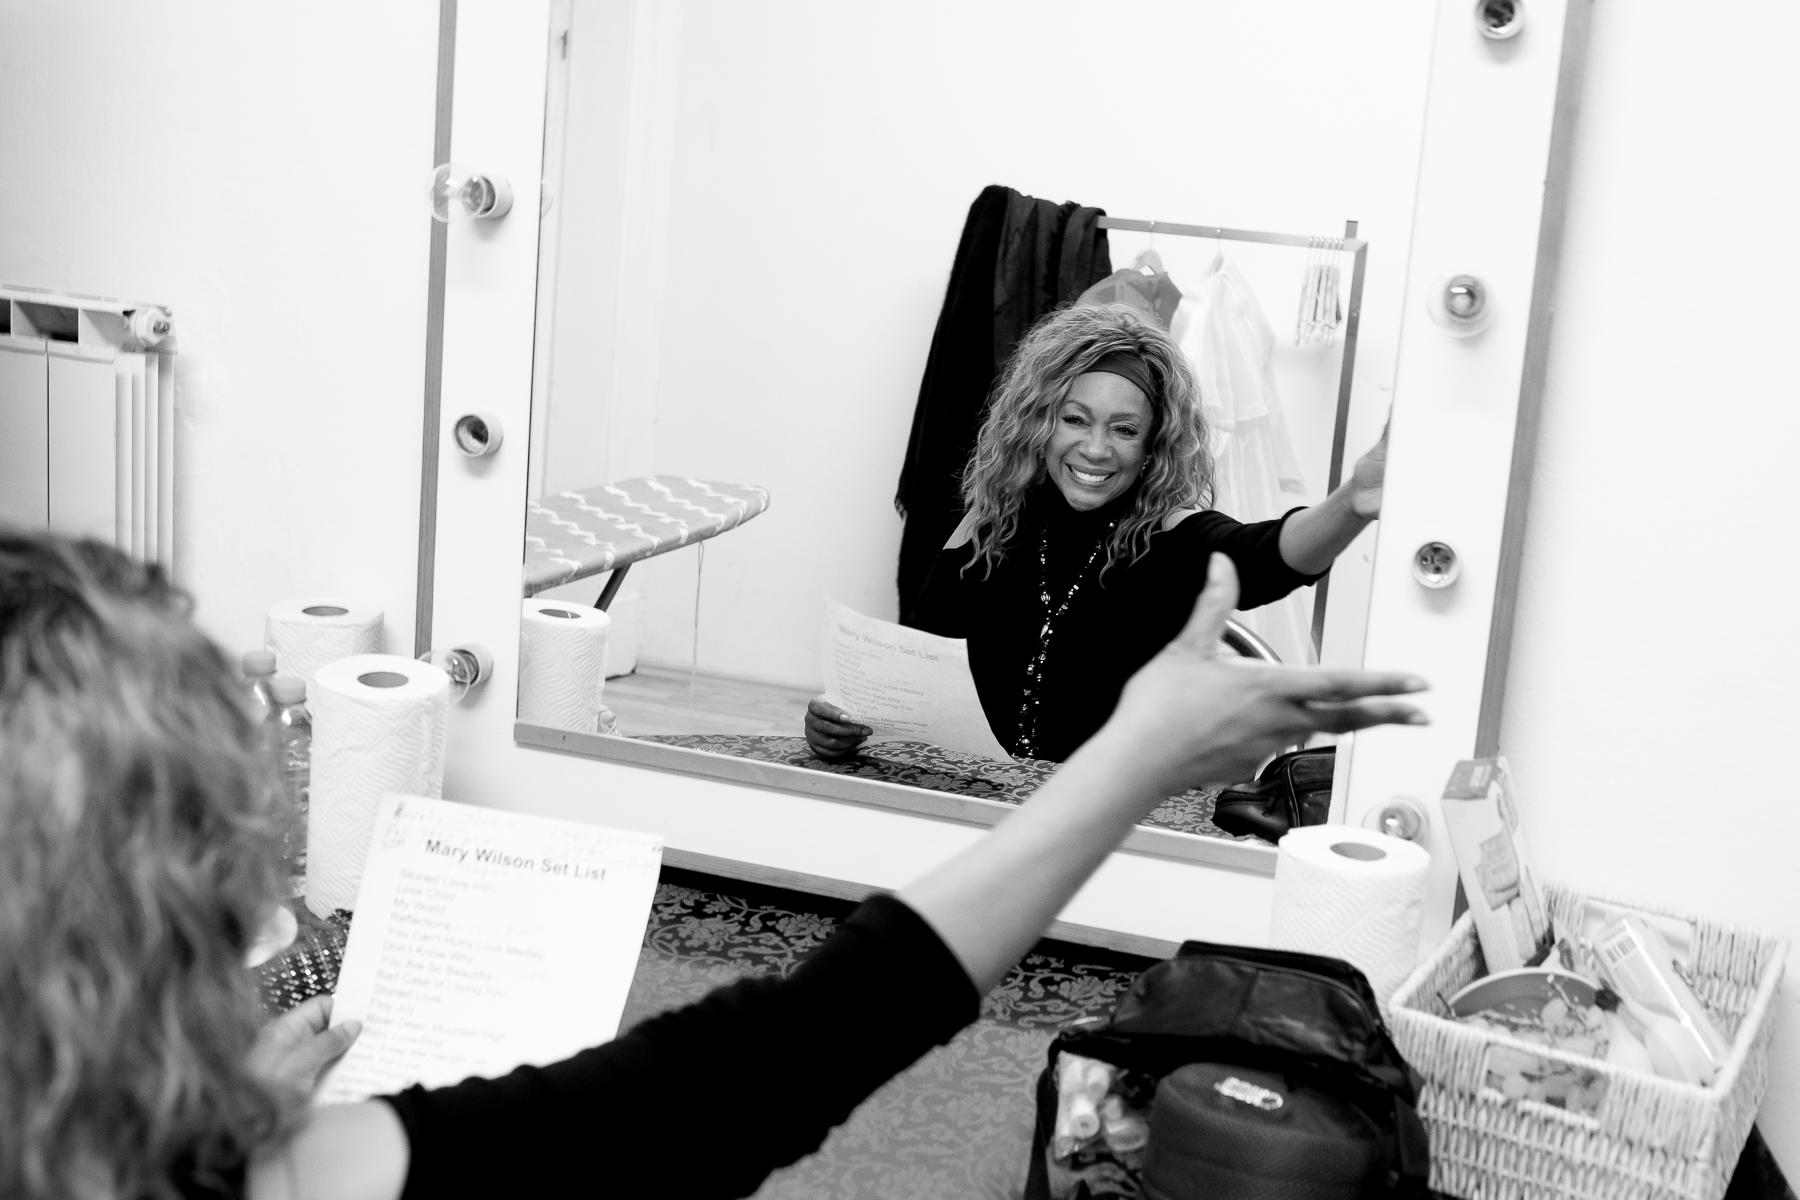 Mary Wilson of the Supremes practices her Slovenian phrases before the concert in Maribor, Slovenia, February 4, 2020.